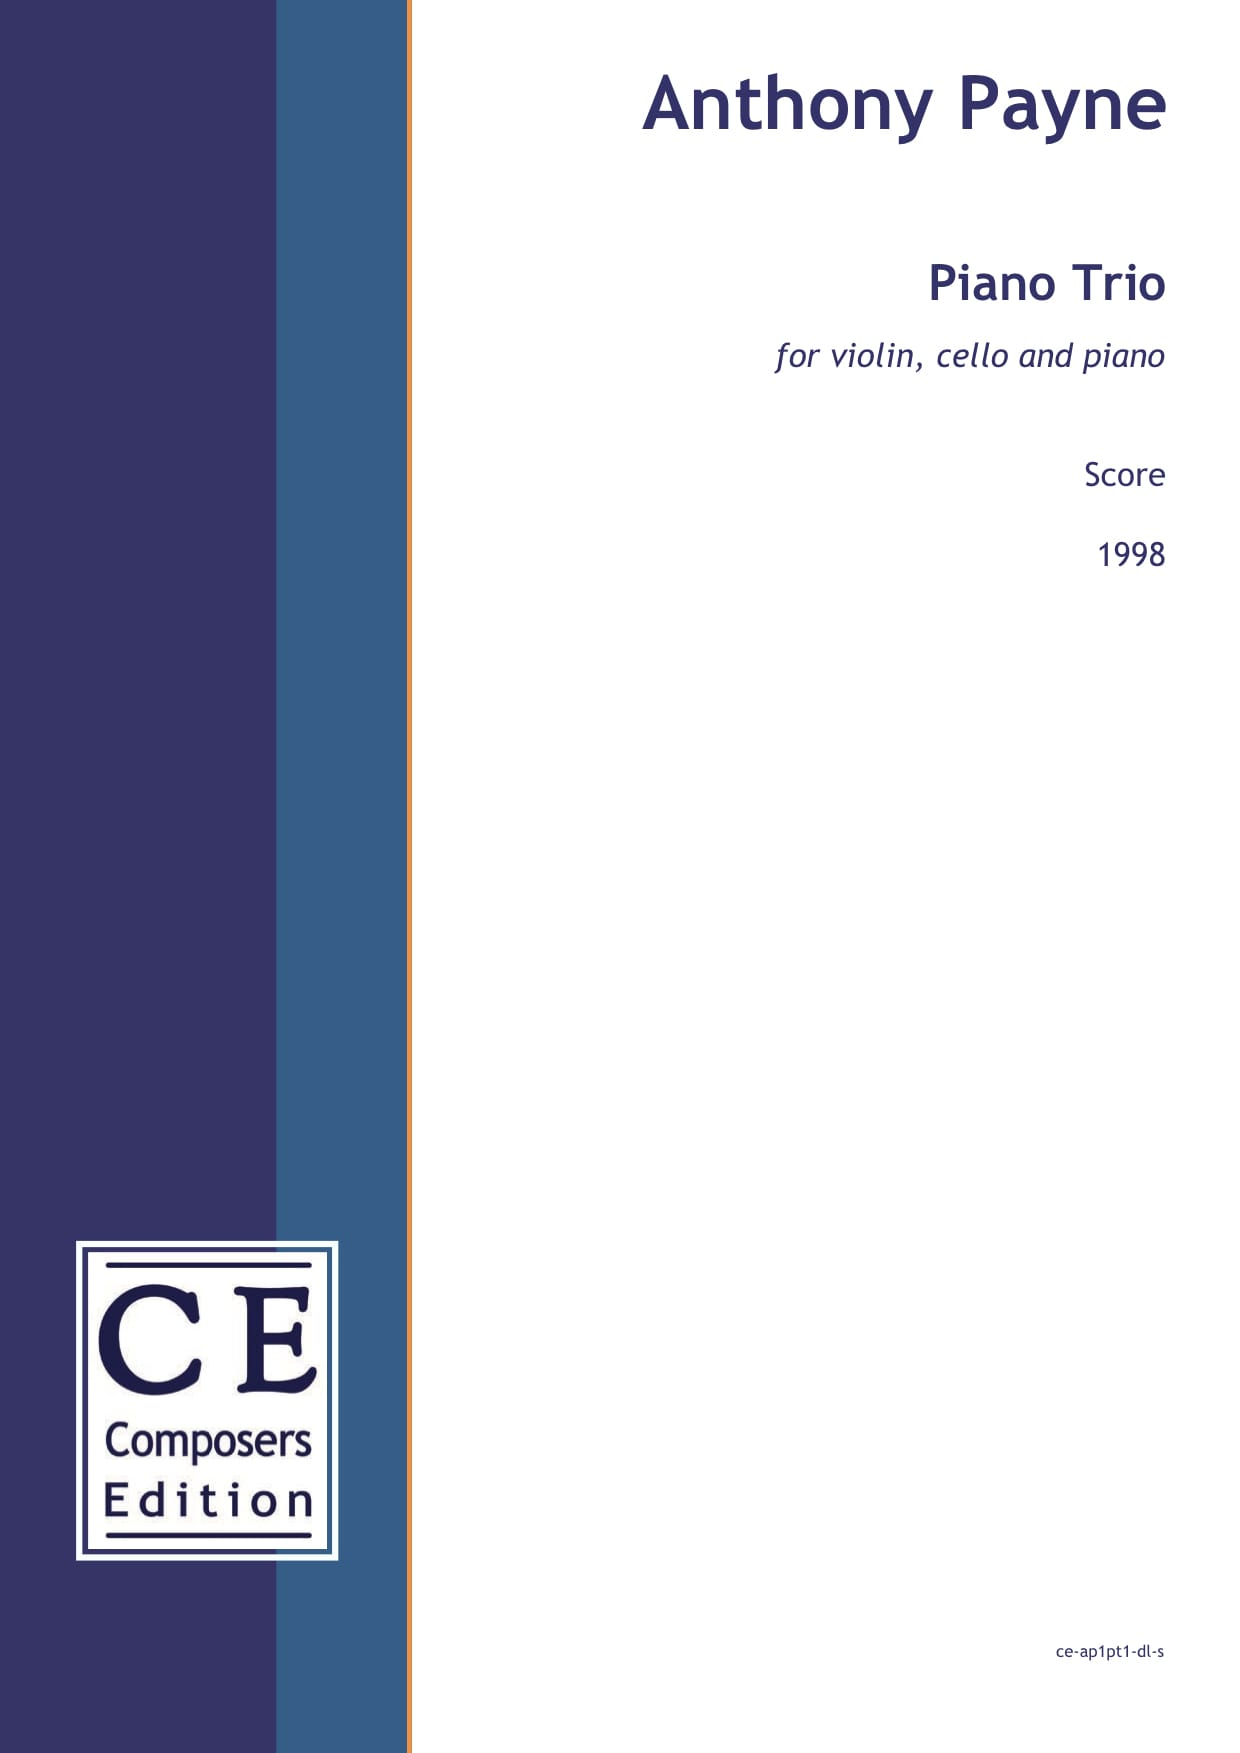 Anthony Payne: Piano Trio for violin, cello and piano